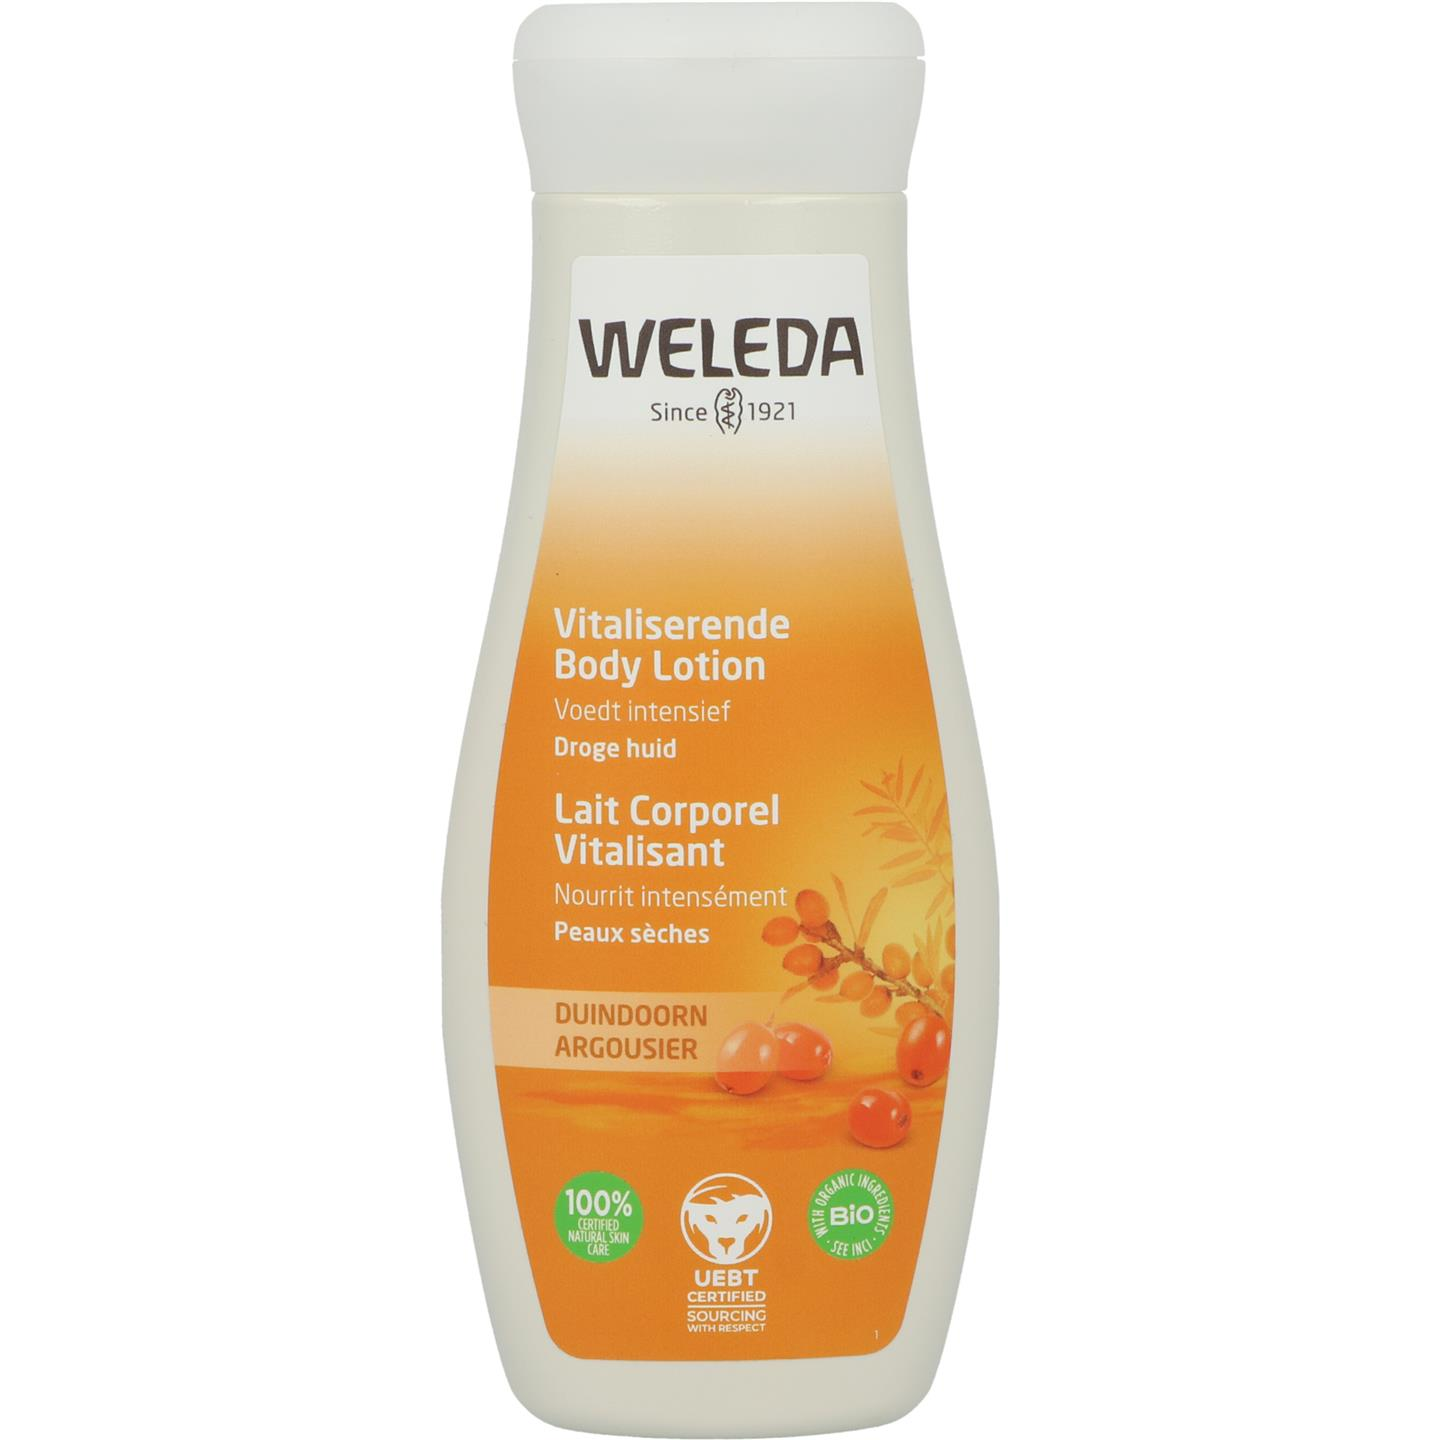 Duindoorn bodylotion